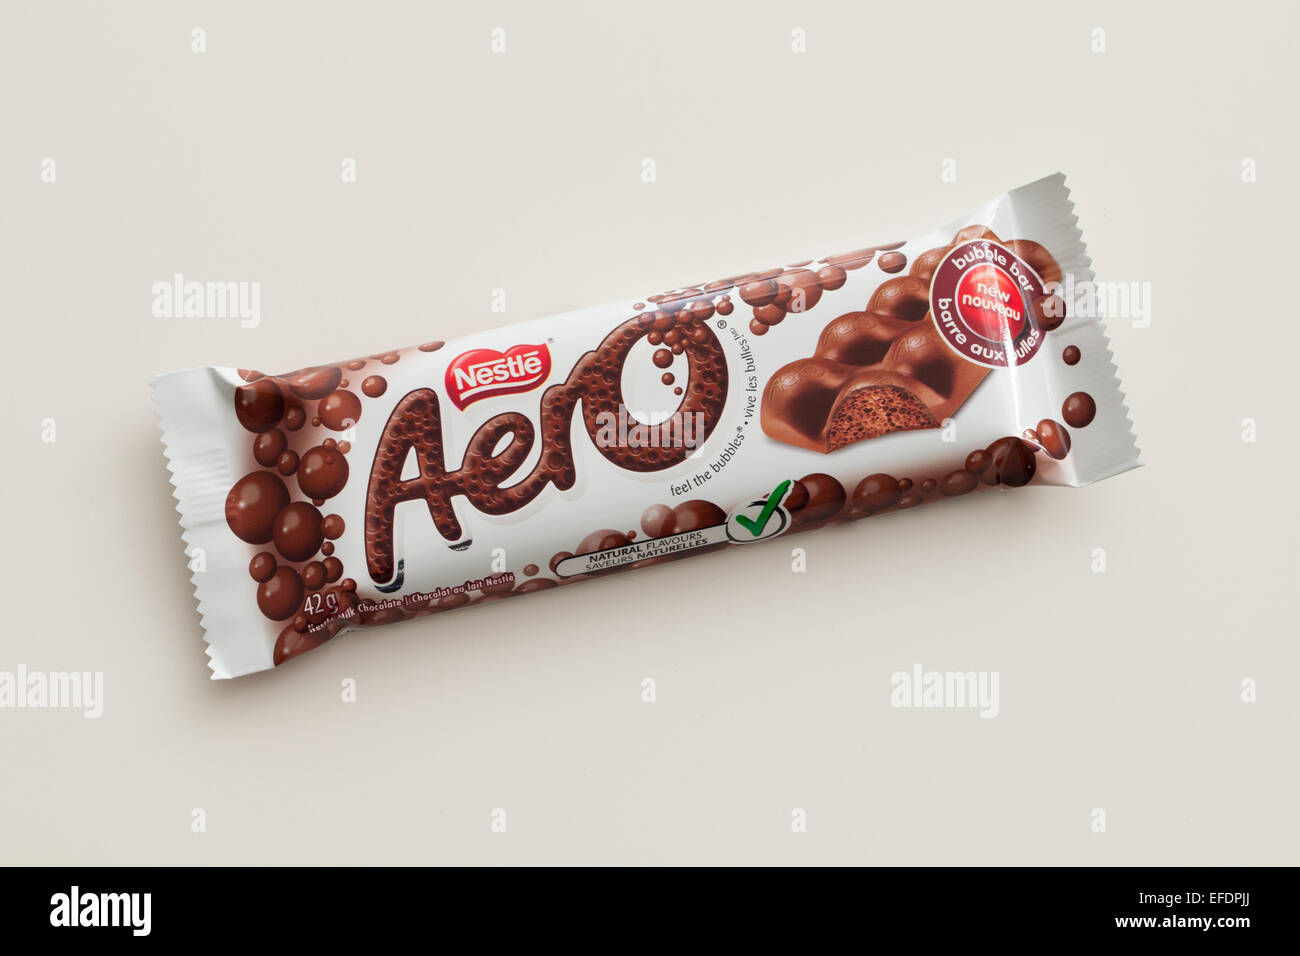 An Aero chocolate bar, produced by Nestlé.  Canadian packaging shown. - Stock Image